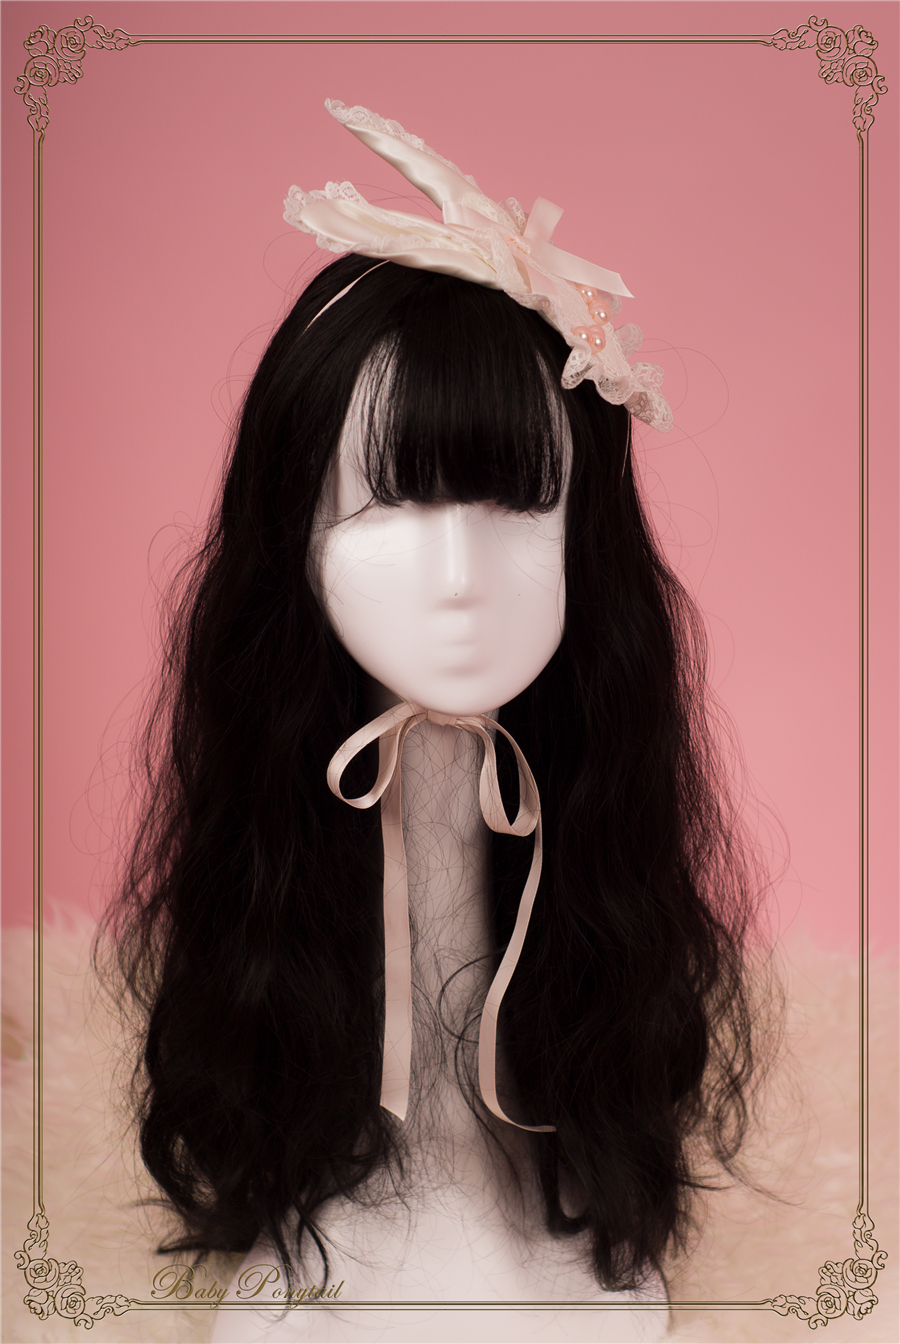 BabyPonytail_Stock Photo_My Favorite Companion_Bunny Head Dress_0.jpg